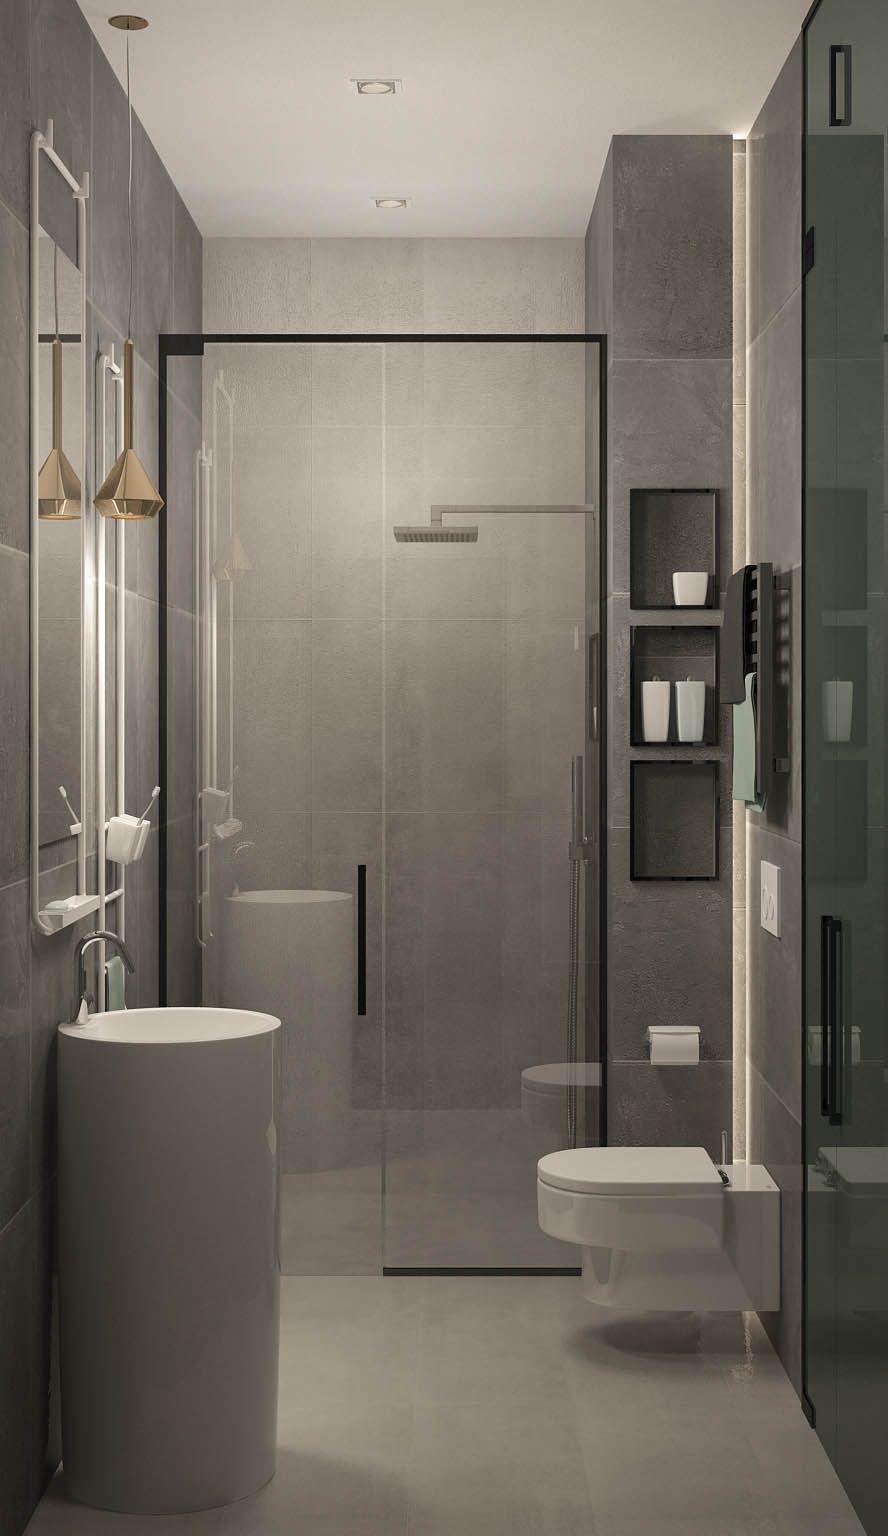 Design of the apartment for a young men | Toilet design ...